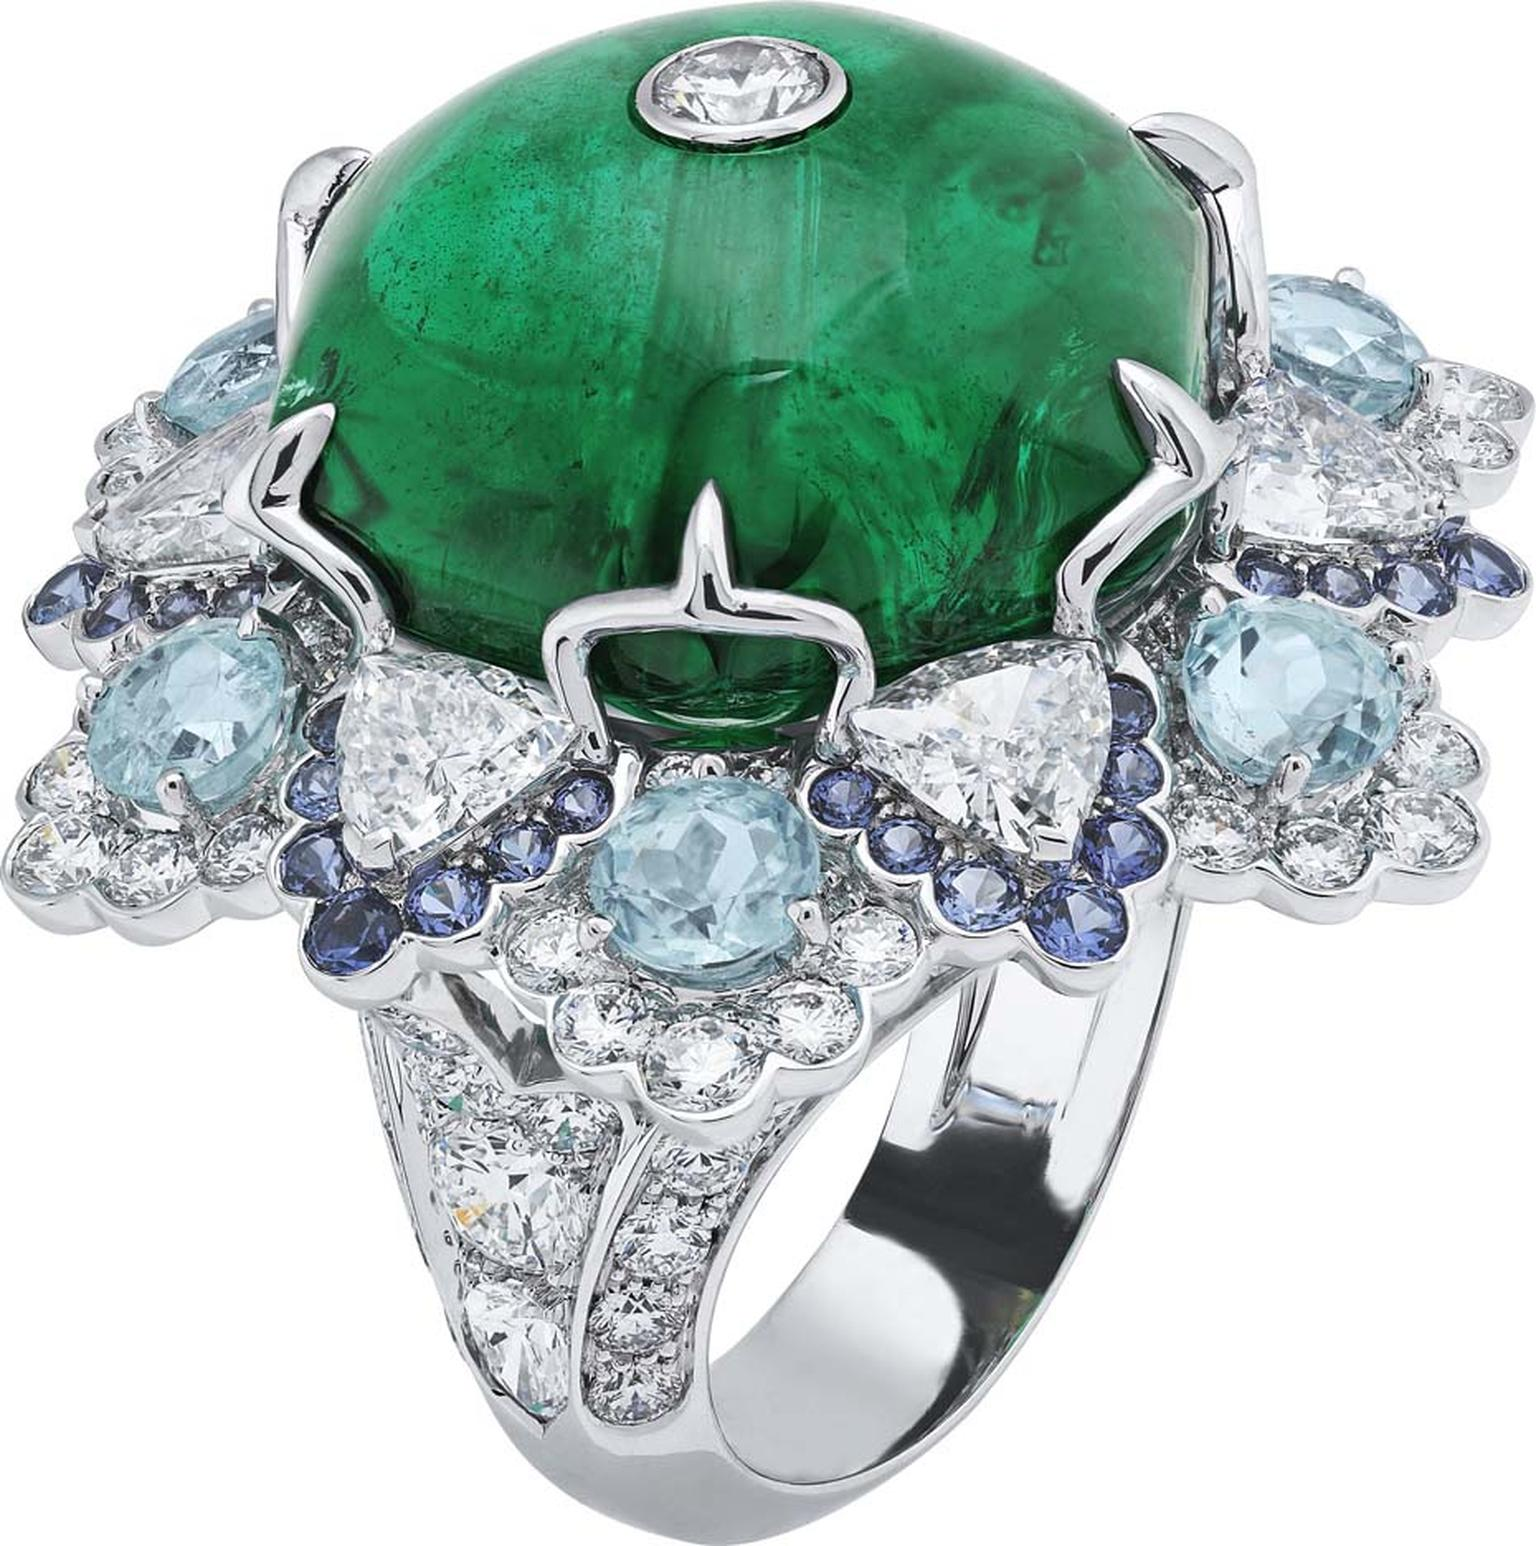 Van Cleef & Arpels Peau d'Ane Childhood Castle collection Love, Love ring in white gold with a 28ct central emerald cabochon, round, pear and trillion-cut diamonds, Paraiba tourmalines and purple spinels.